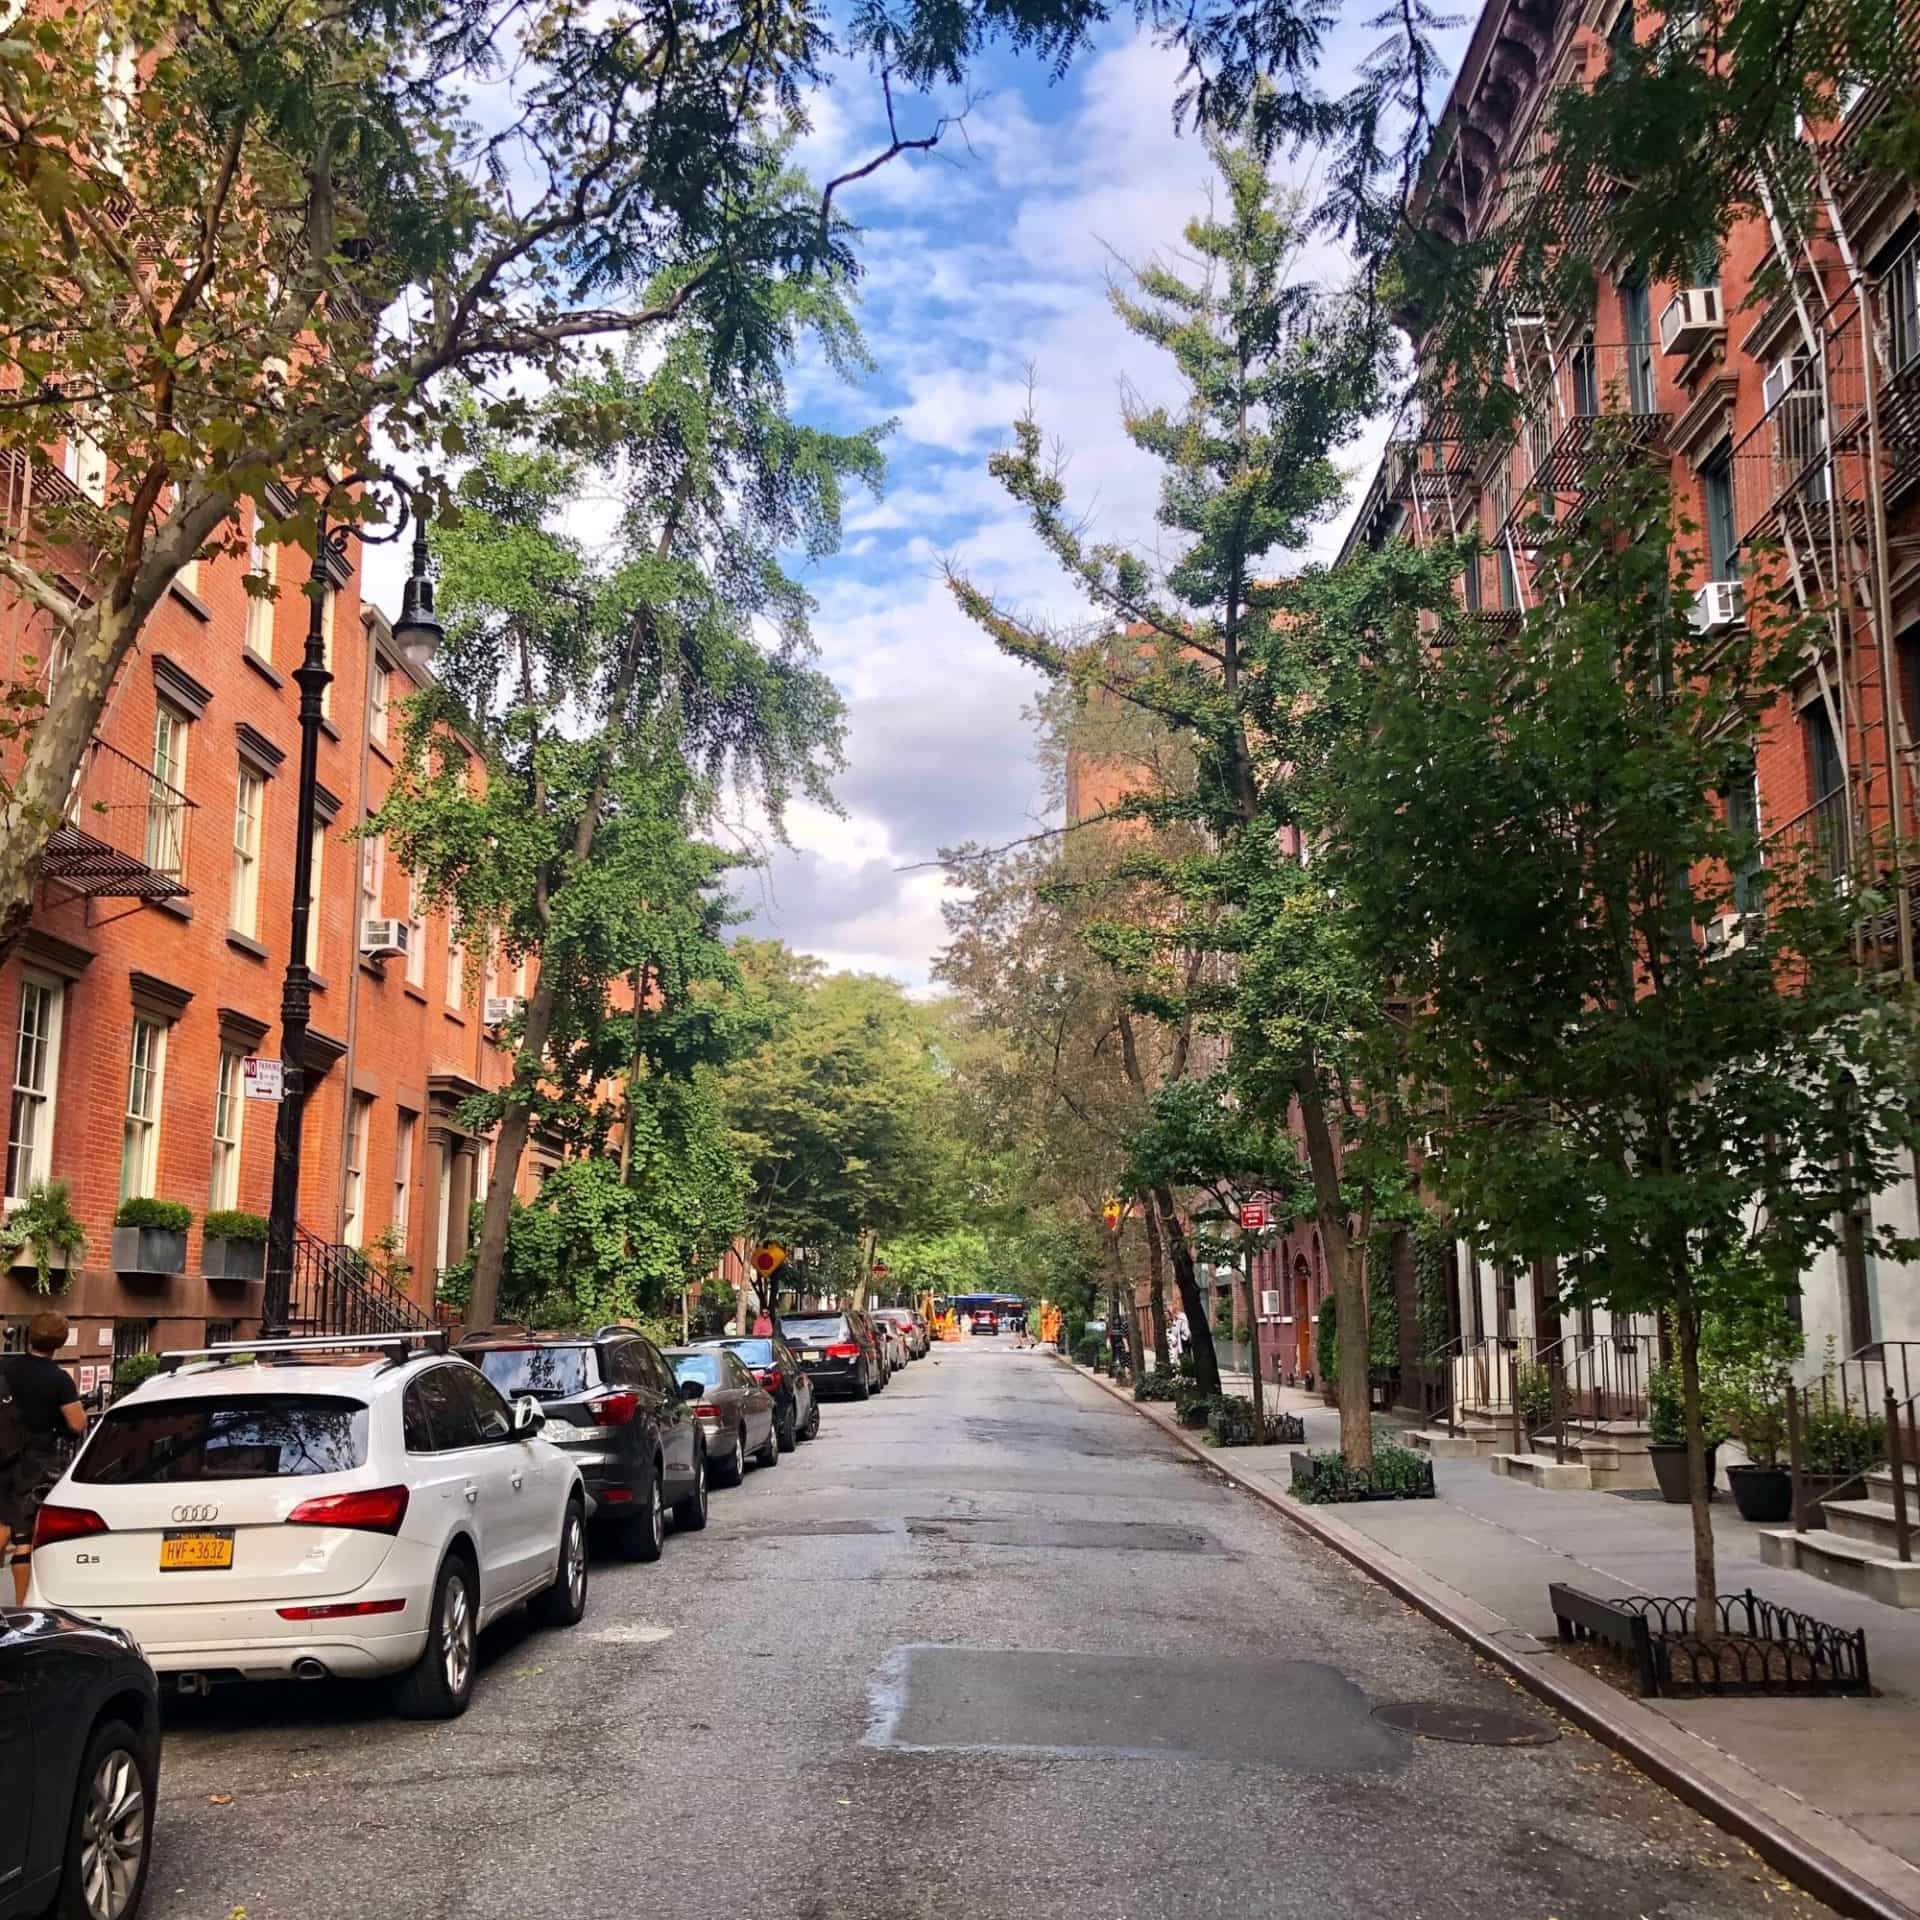 Charming West Village Streets in New York City